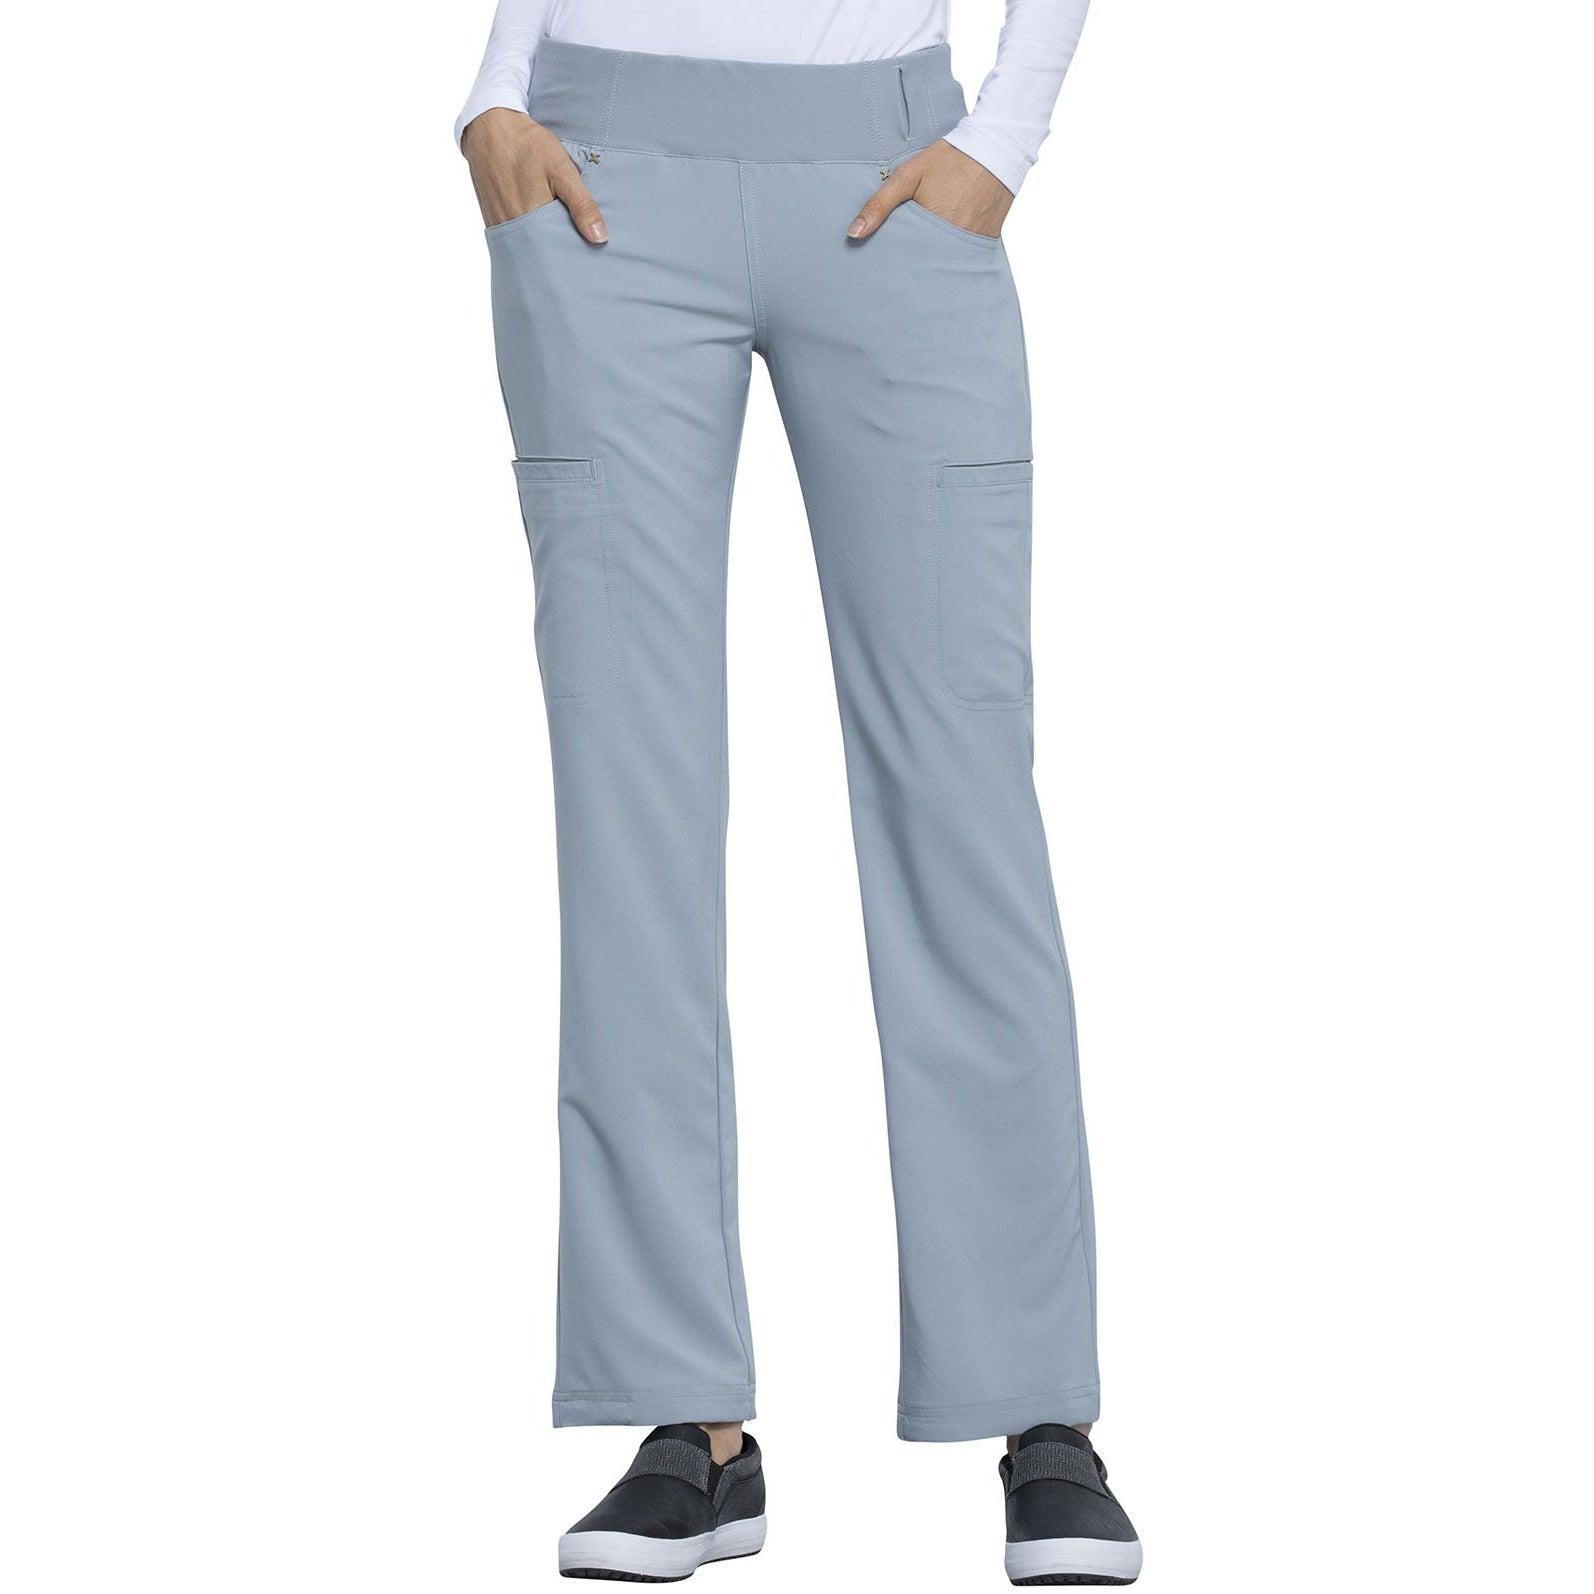 Mid Rise Straight Leg Pull-on Pant CK002T Tall INSEAM 33.5""